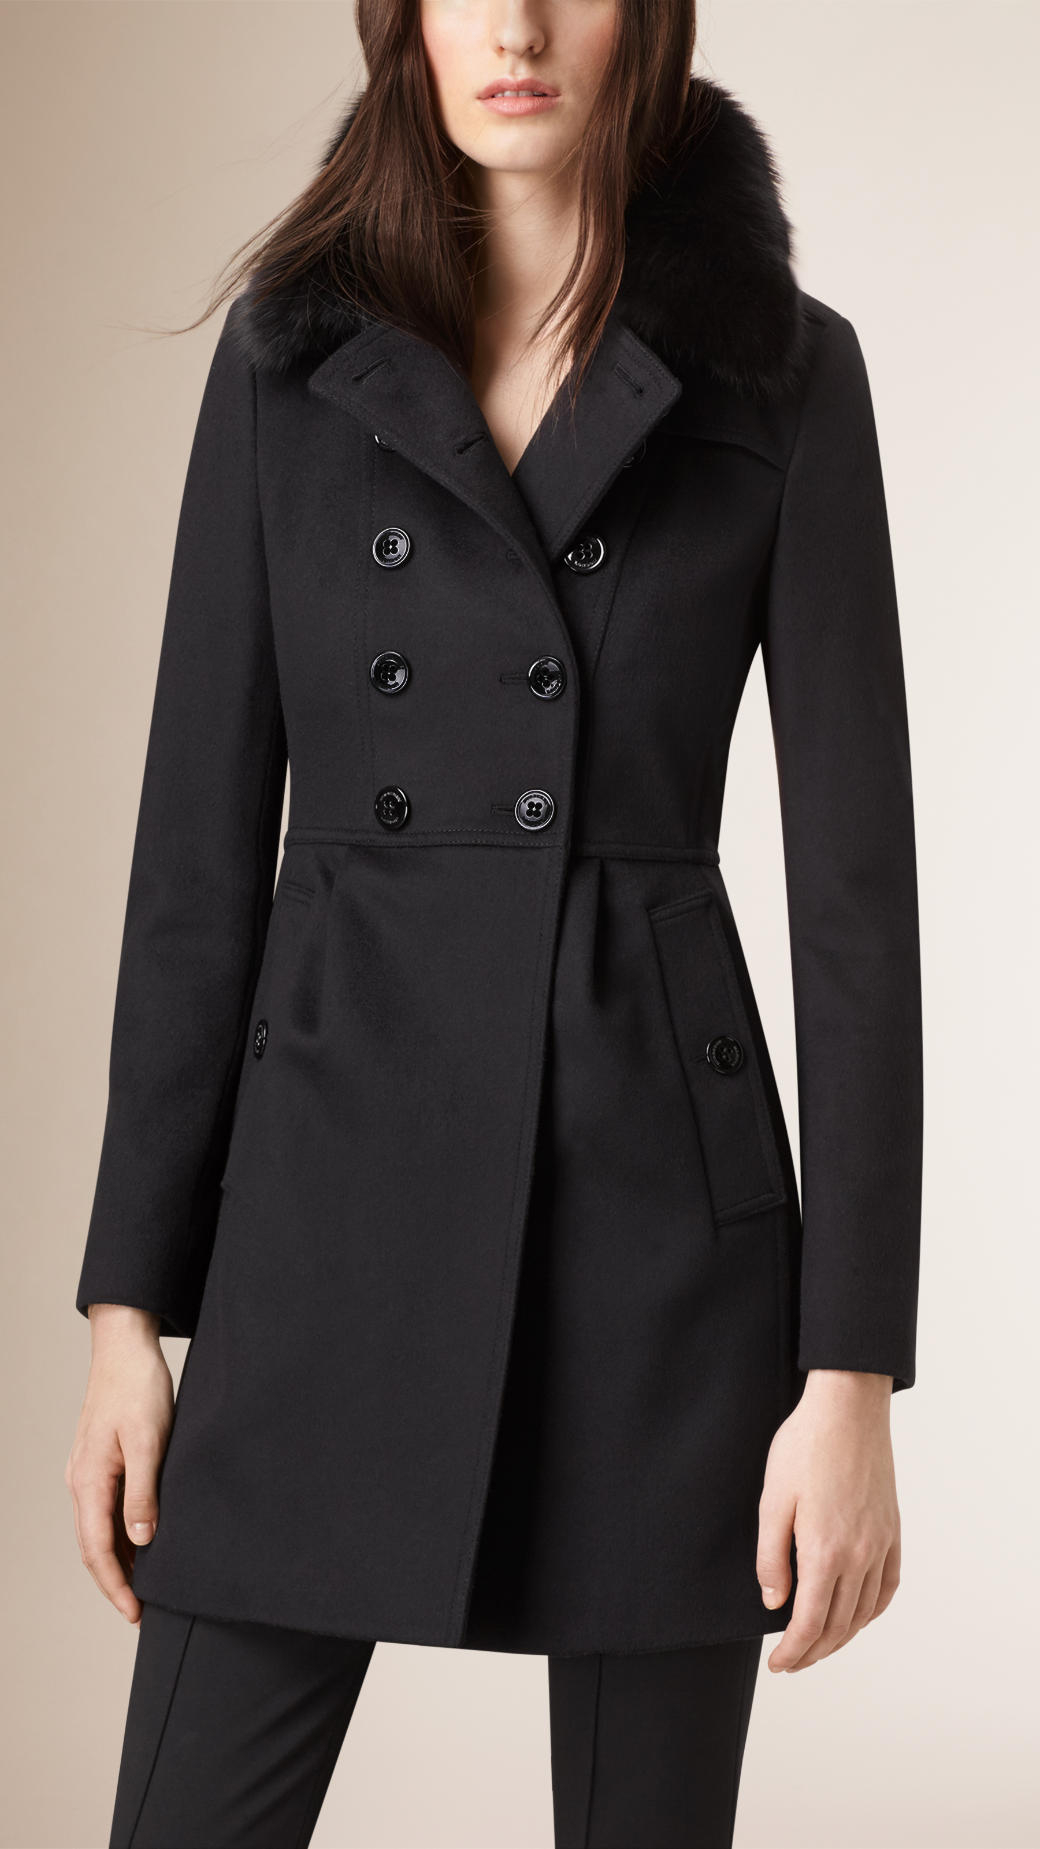 Burberry Virgin Wool Cashmere Coat With Fox Fur Collar in Black | Lyst